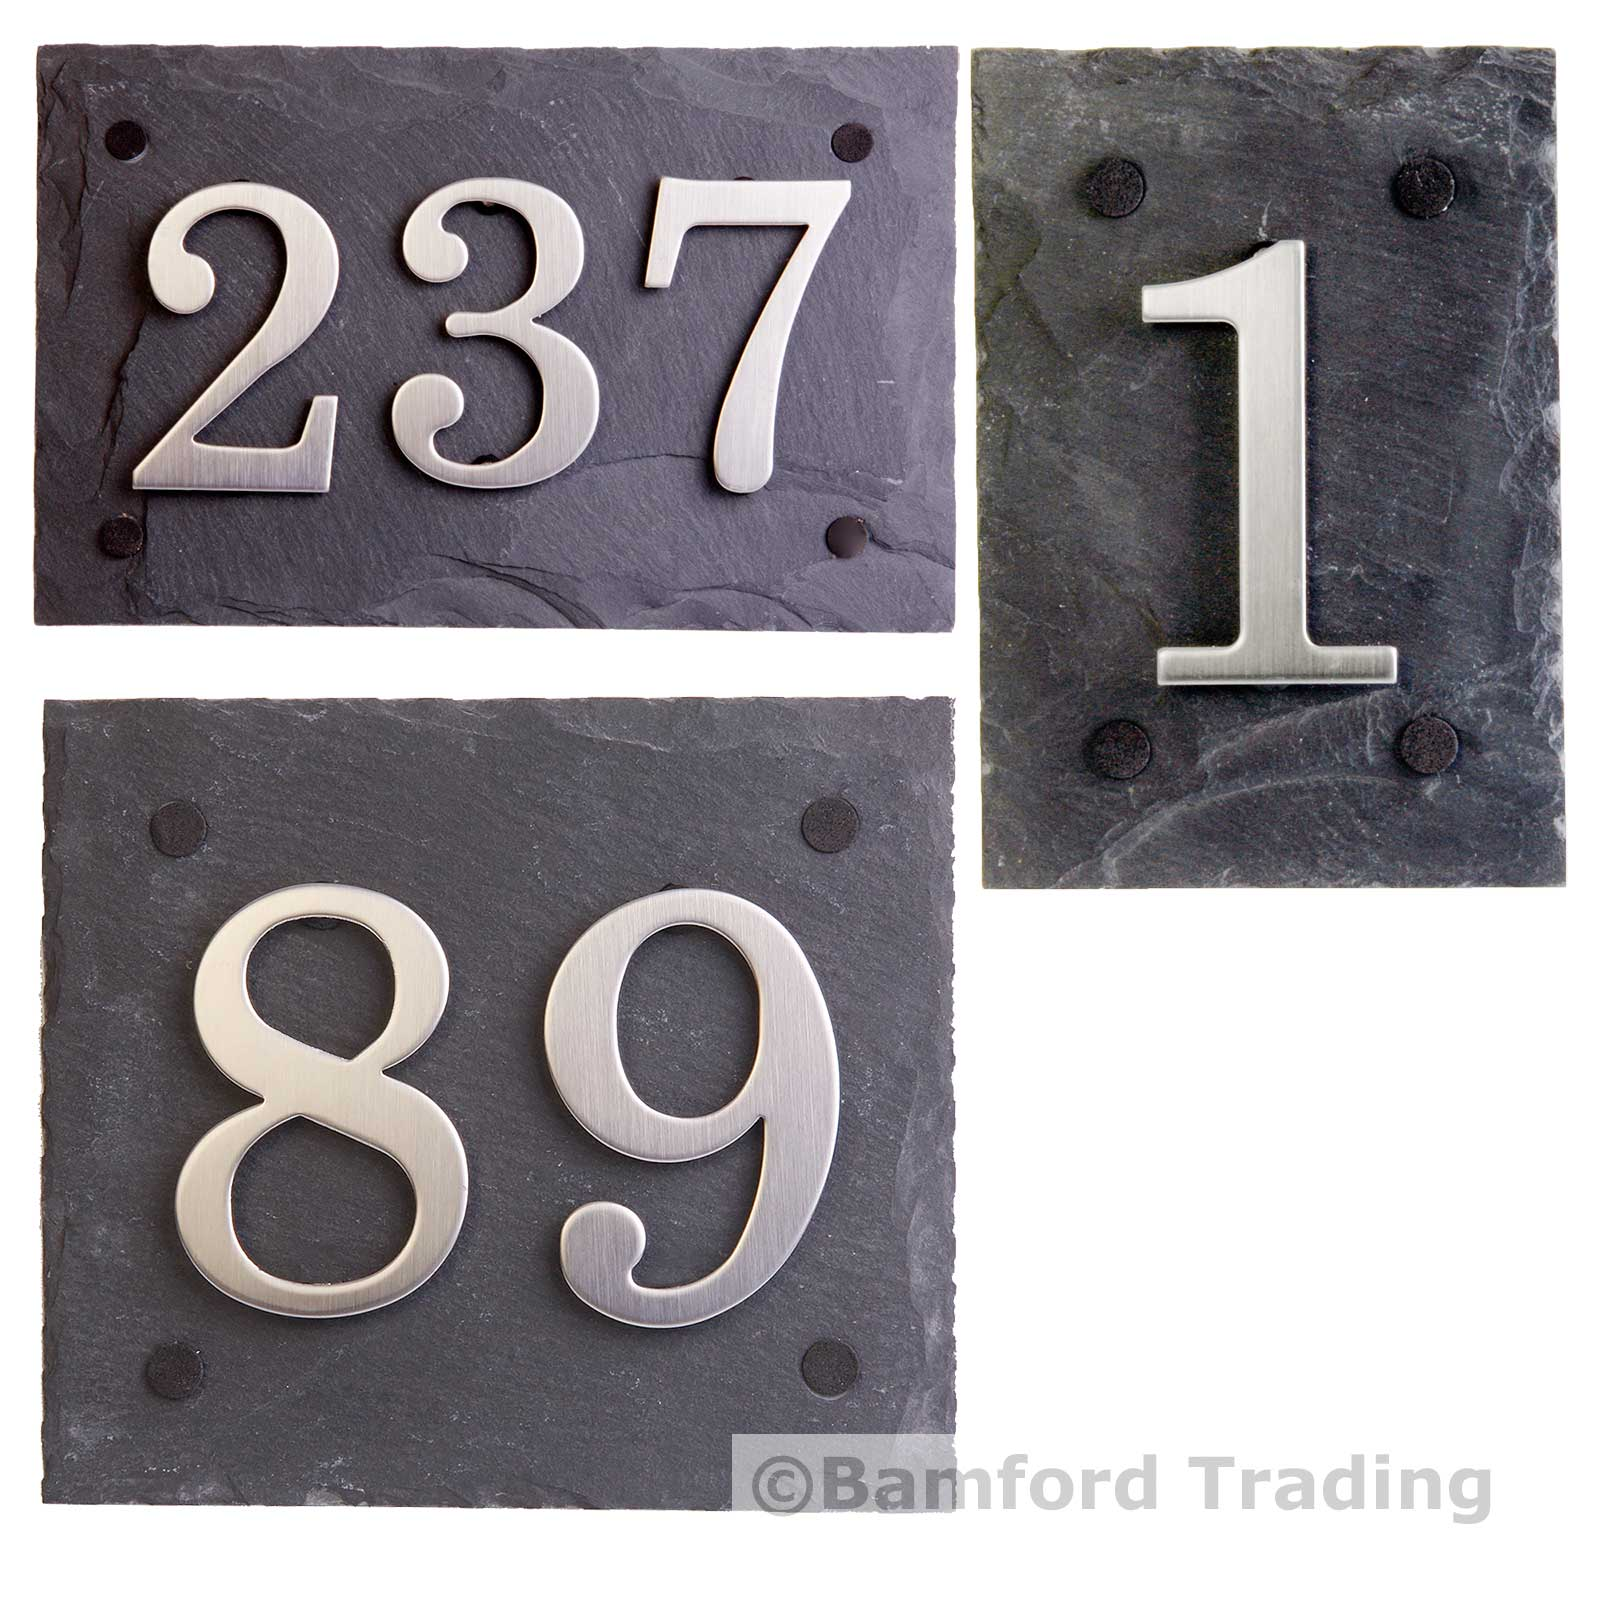 Natural Slate Door/House Number Plaques with Choice of Stainless Steel Digits  sc 1 st  eBay & Natural Slate Door/House Number Plaques with Choice of Stainless ... pezcame.com